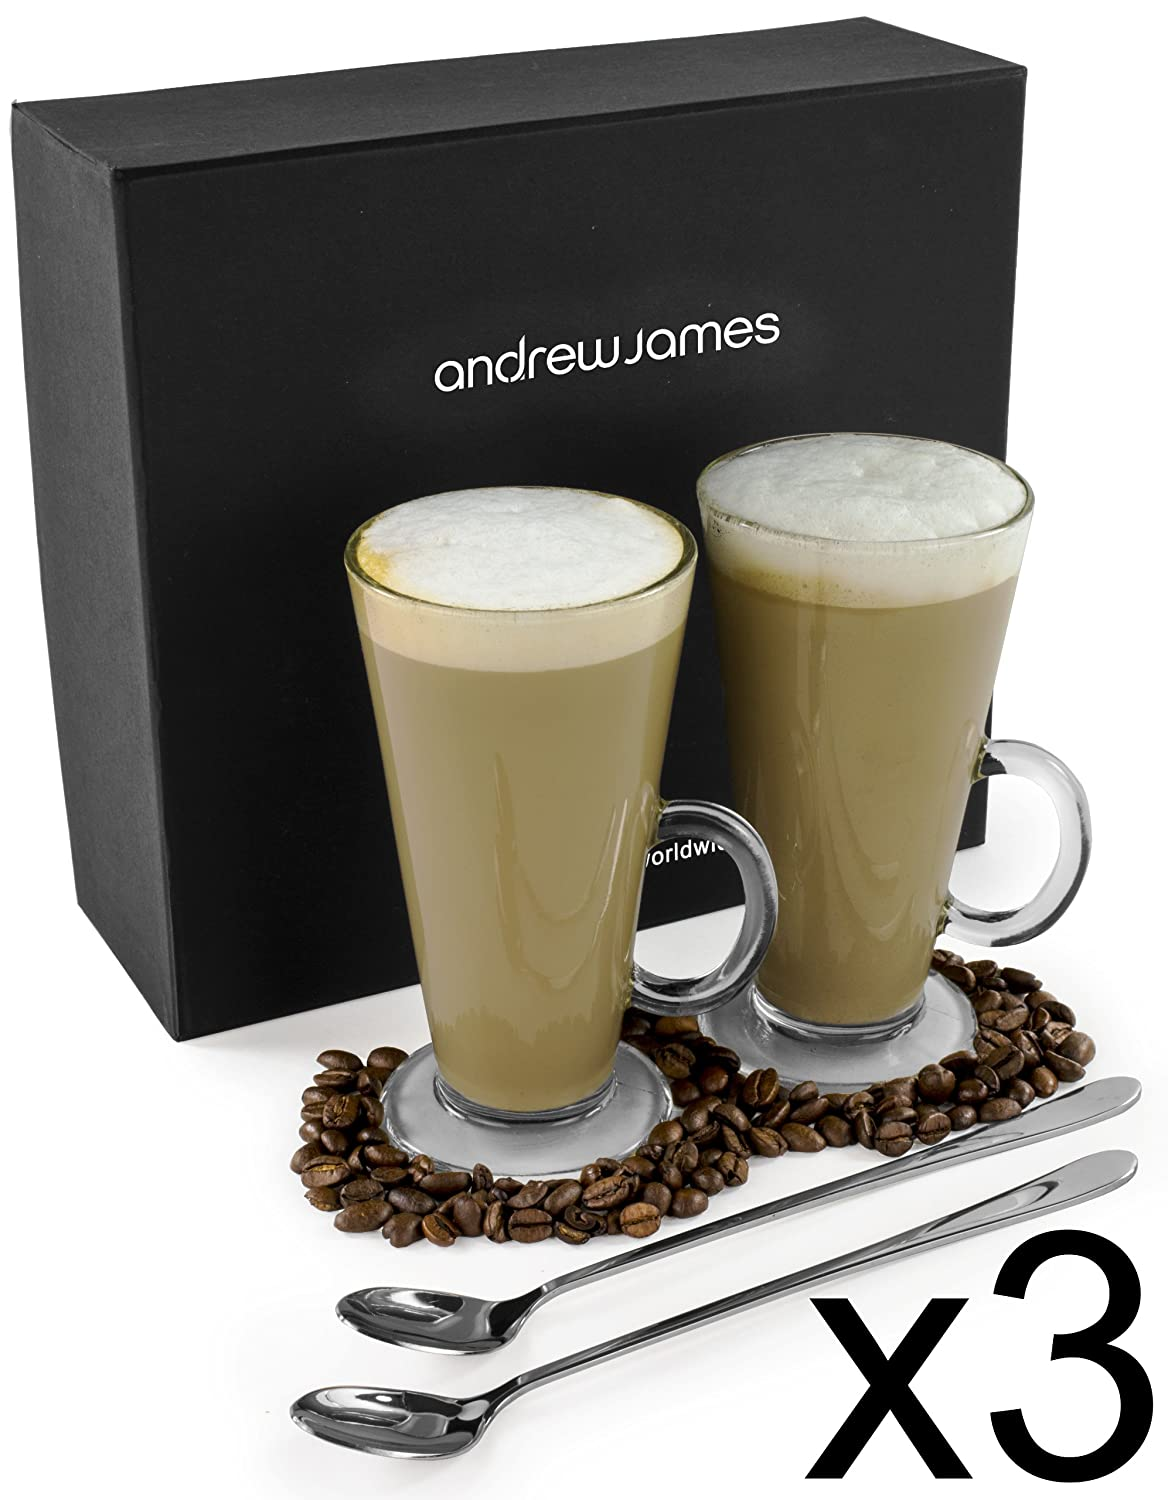 Andrew James Latte Coffee Glasses 240ml | Set of 2 Toughened Glass Coffee Mugs with Handles | Includes 2 Long Handled Stainless Steel Teaspoons | Presentation Gift Box